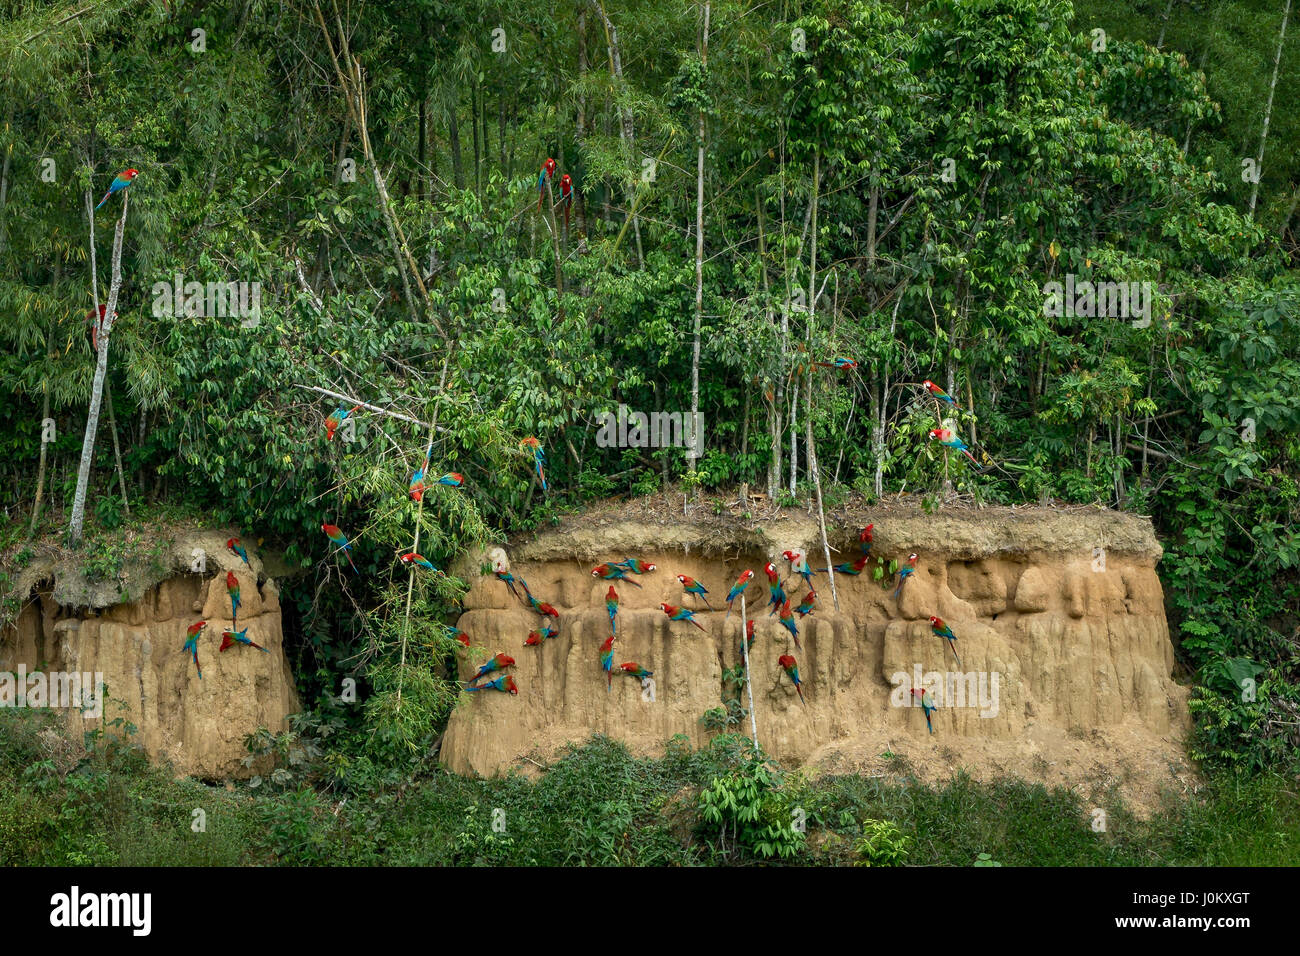 Redandgreen ara parrots watching in the Manu National Park, Peru. They are eating mineral-clay at a clay lick. - Stock Image